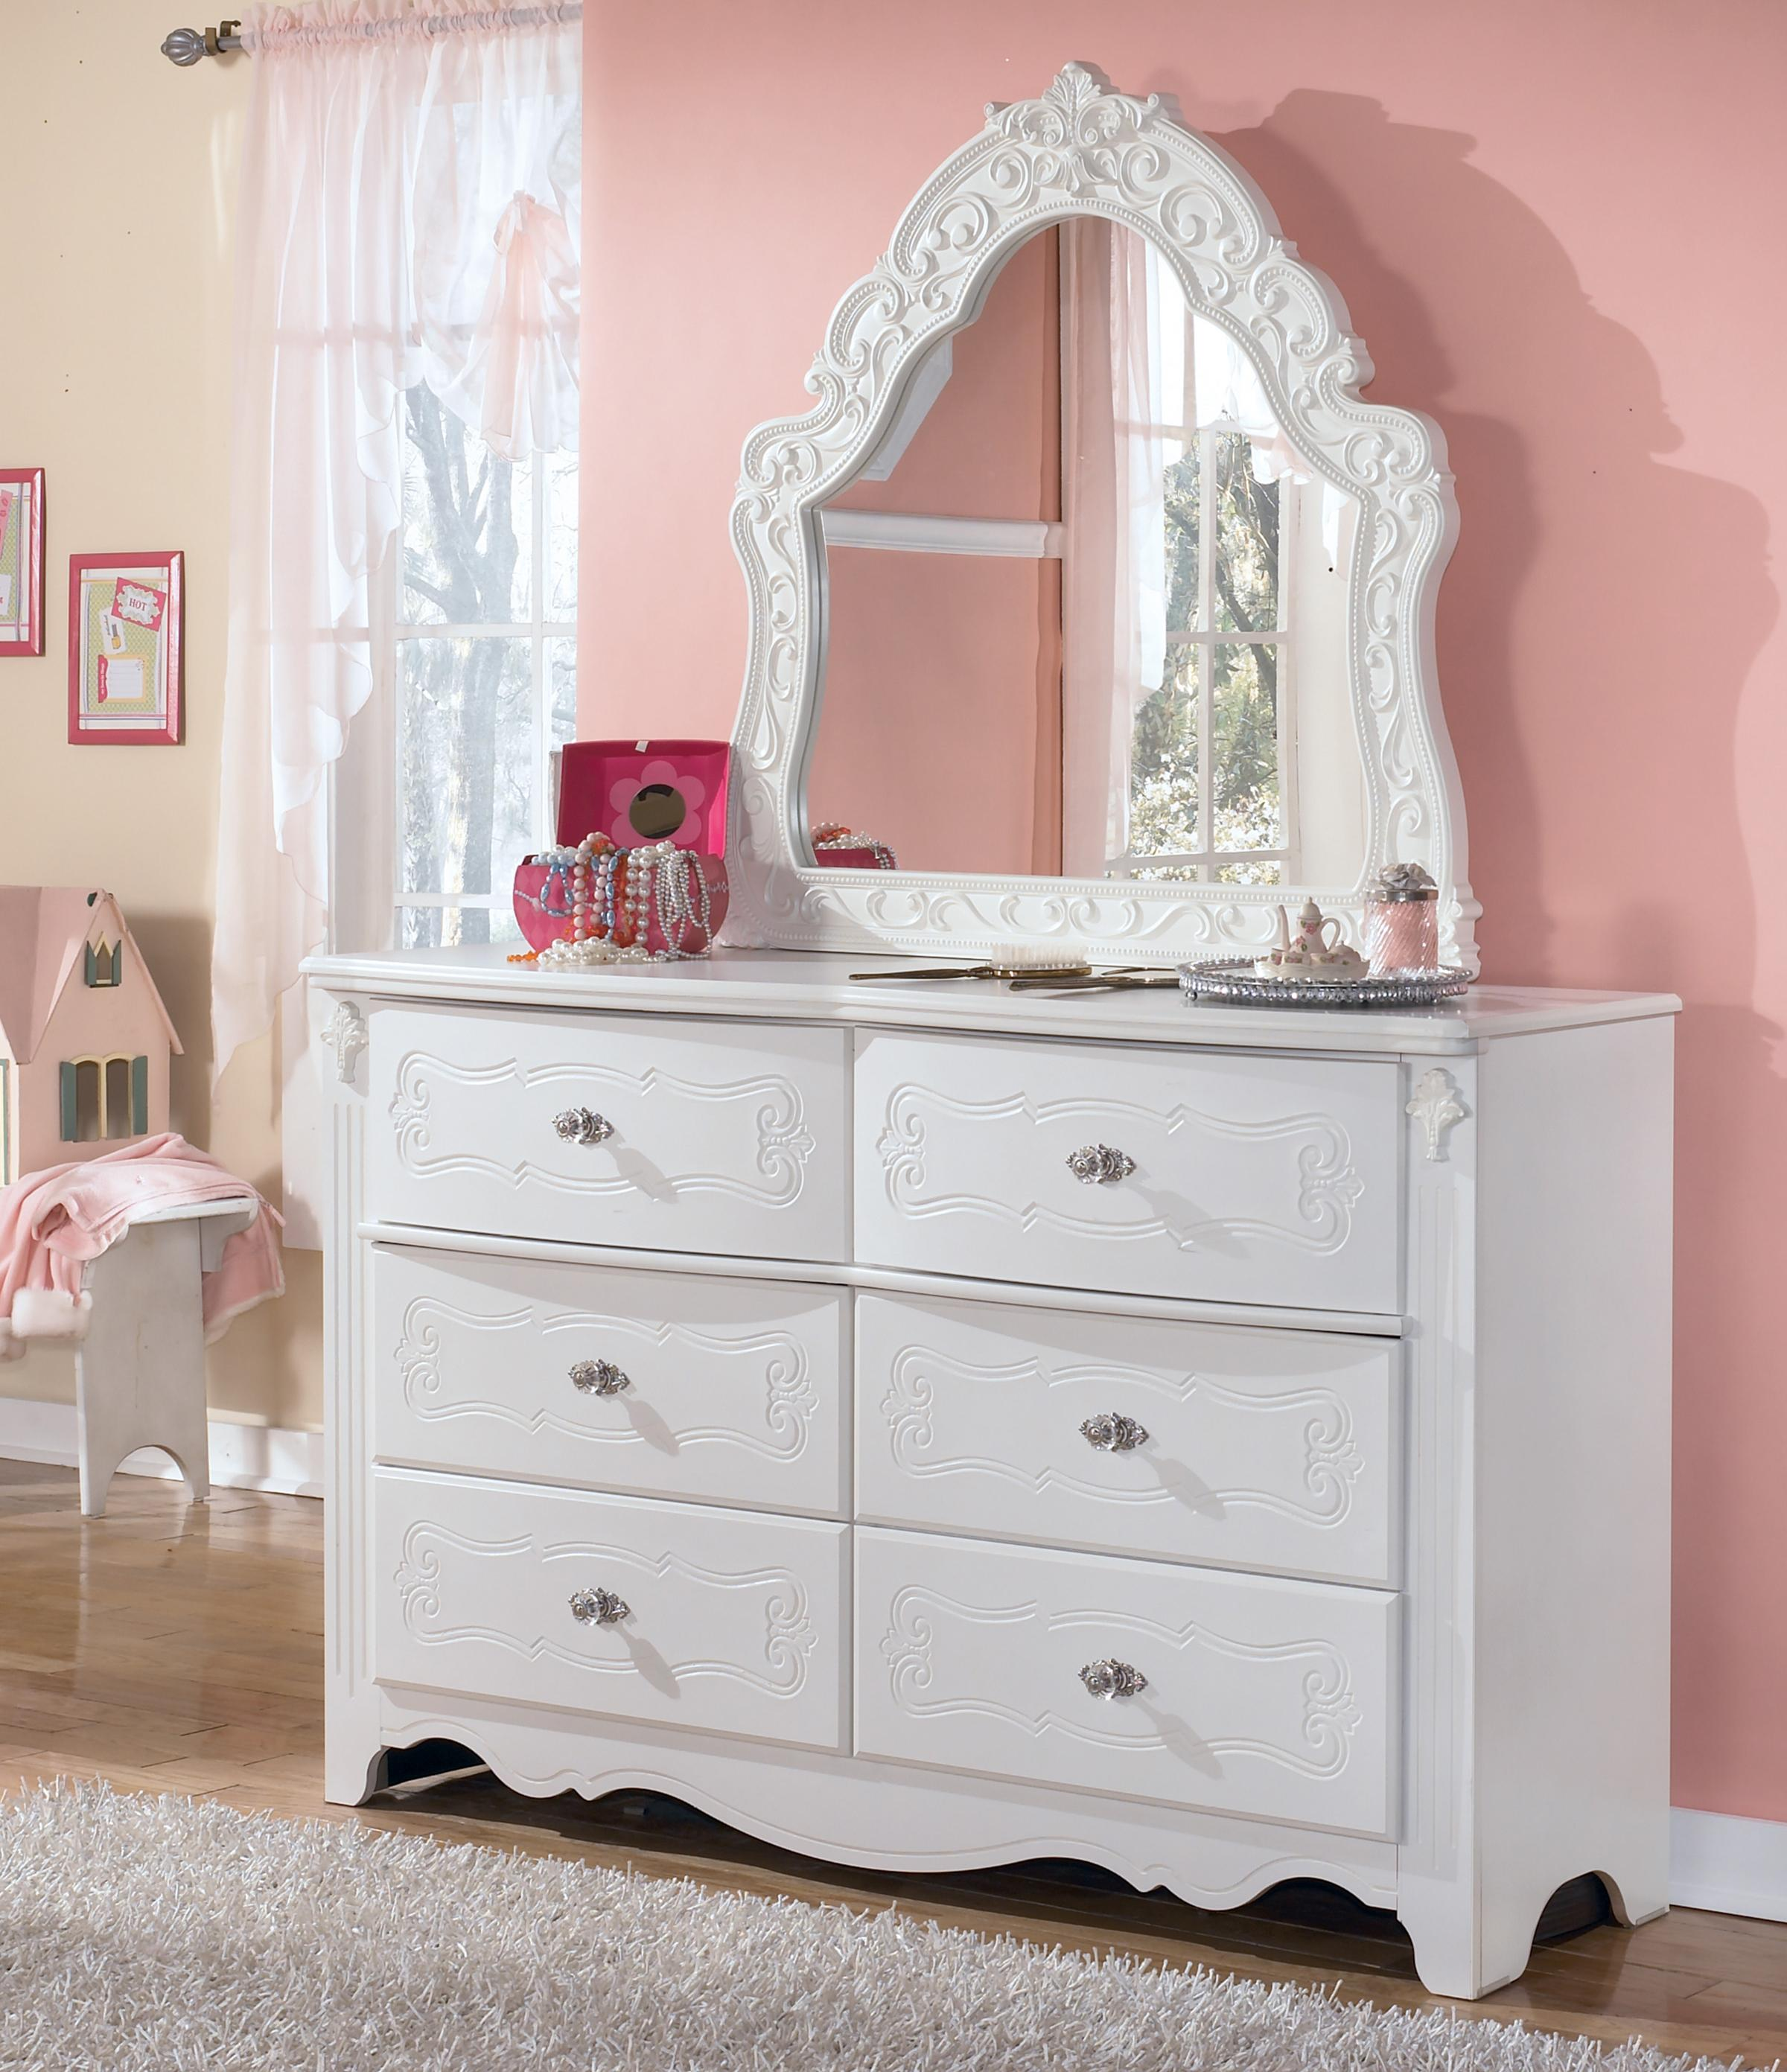 Signature Design by Ashley Exquisite Dresser & Bedroom Mirror - Item Number: B188-21+37